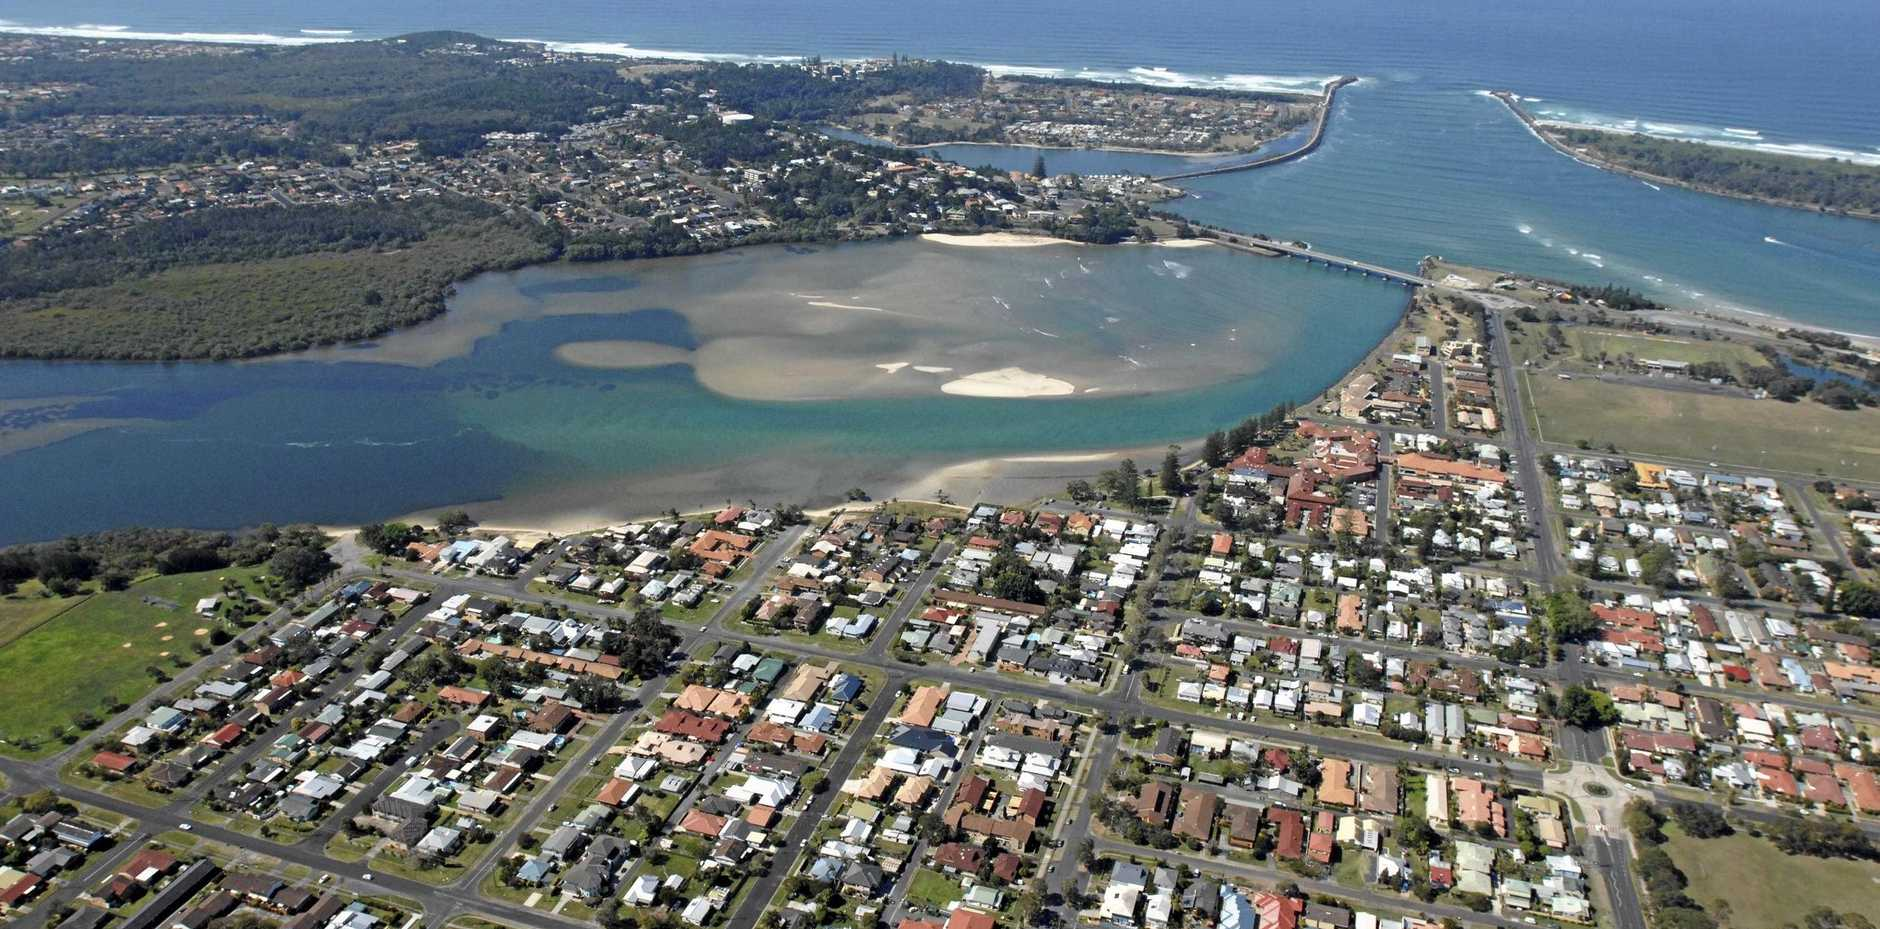 RETIREE HOTSPOT: Ballina has the most people aged 75 and over (22 per cent) on the Northern Rivers, while West Ballina is also up there, with15 per cent of its population over 75 years of age.